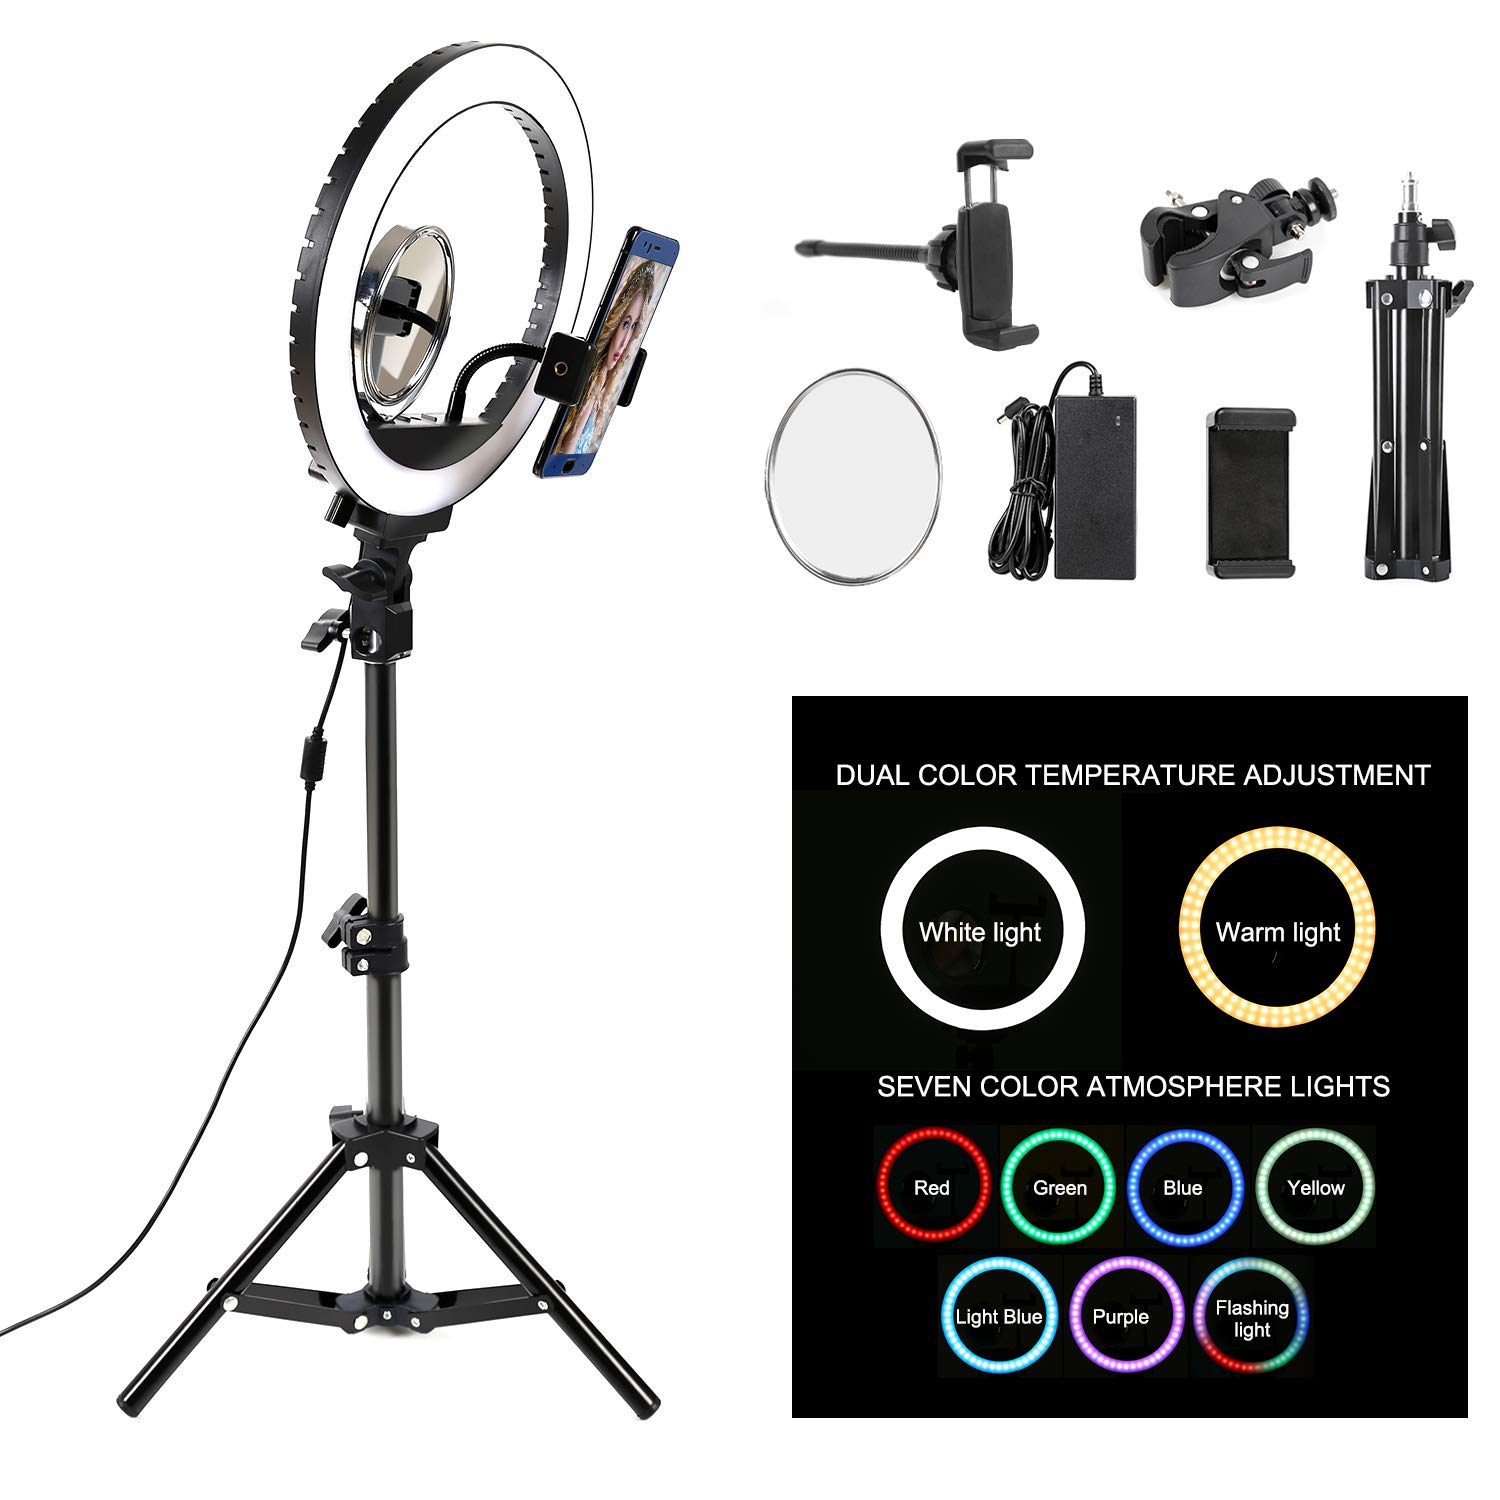 LTRINGYS LED Ring Light Kit 10''with Tripod Stand and Cell Phone Holder RGB Dimmable LED Ring Light,Desktop Selfie Ring Light for Shooting,Vlog, Makeup, YouTube, Camera/Phone Video 3200K-5500K by LTRINGYS